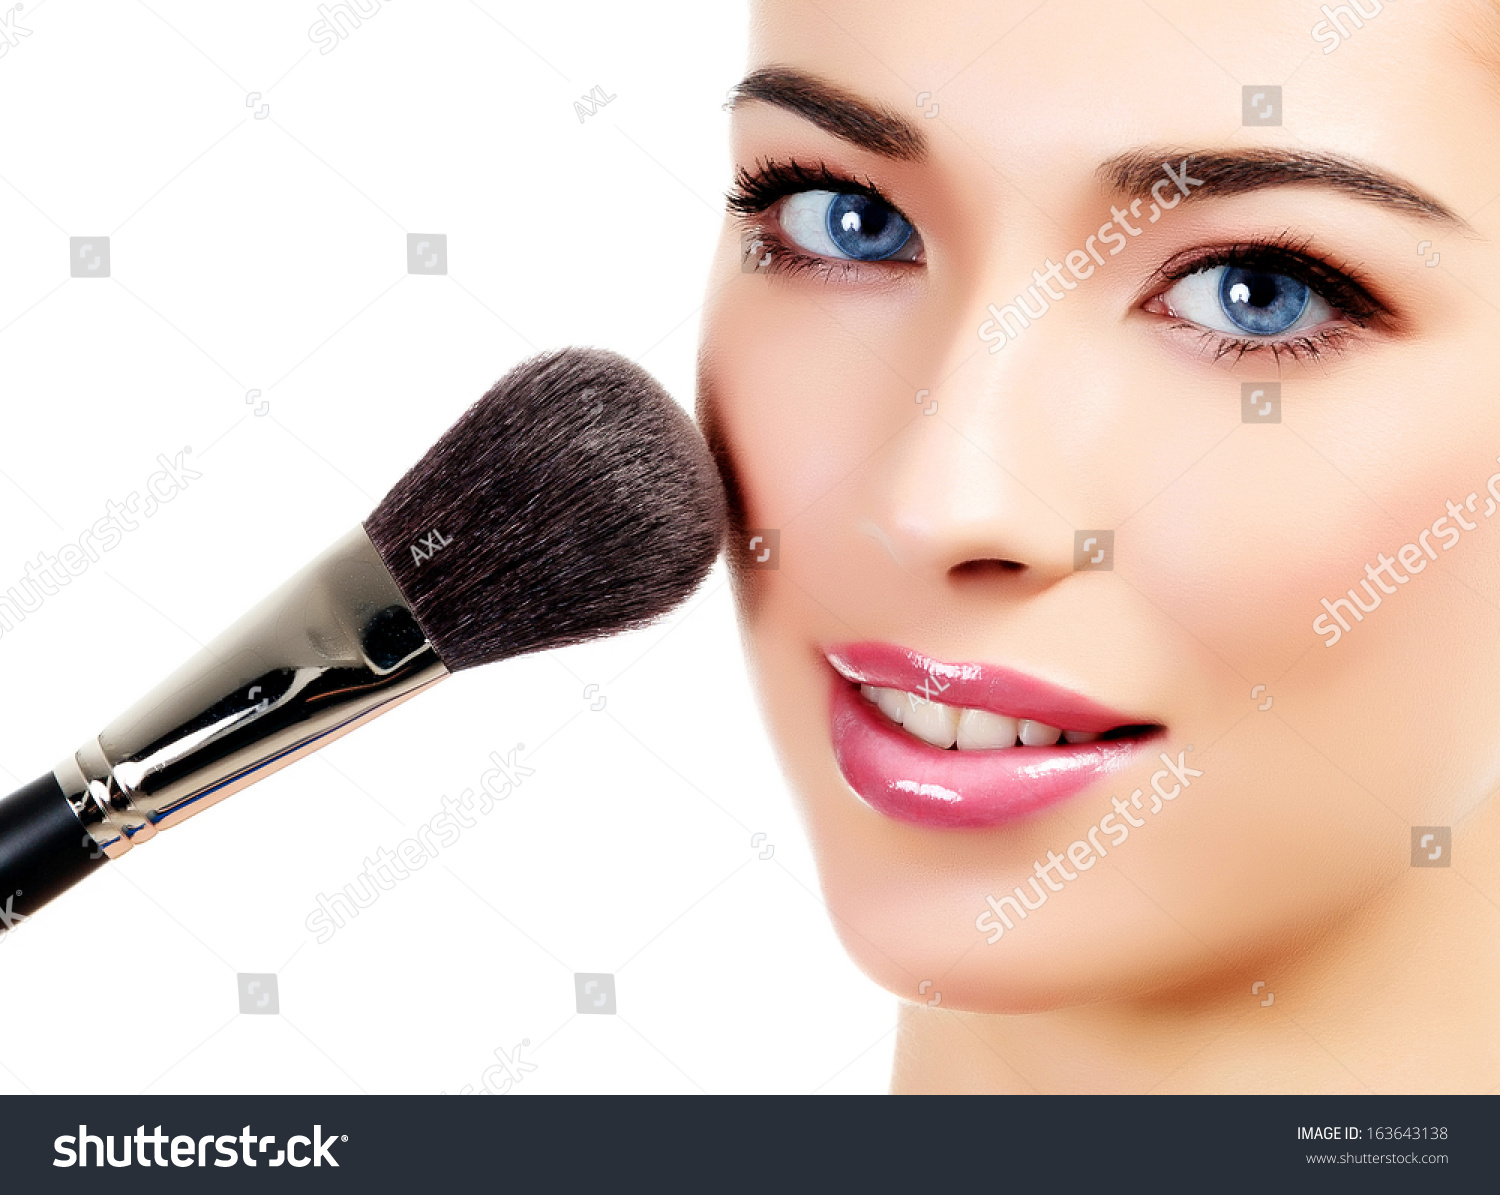 Pretty woman with a cosmetic brush, white background  #163643138